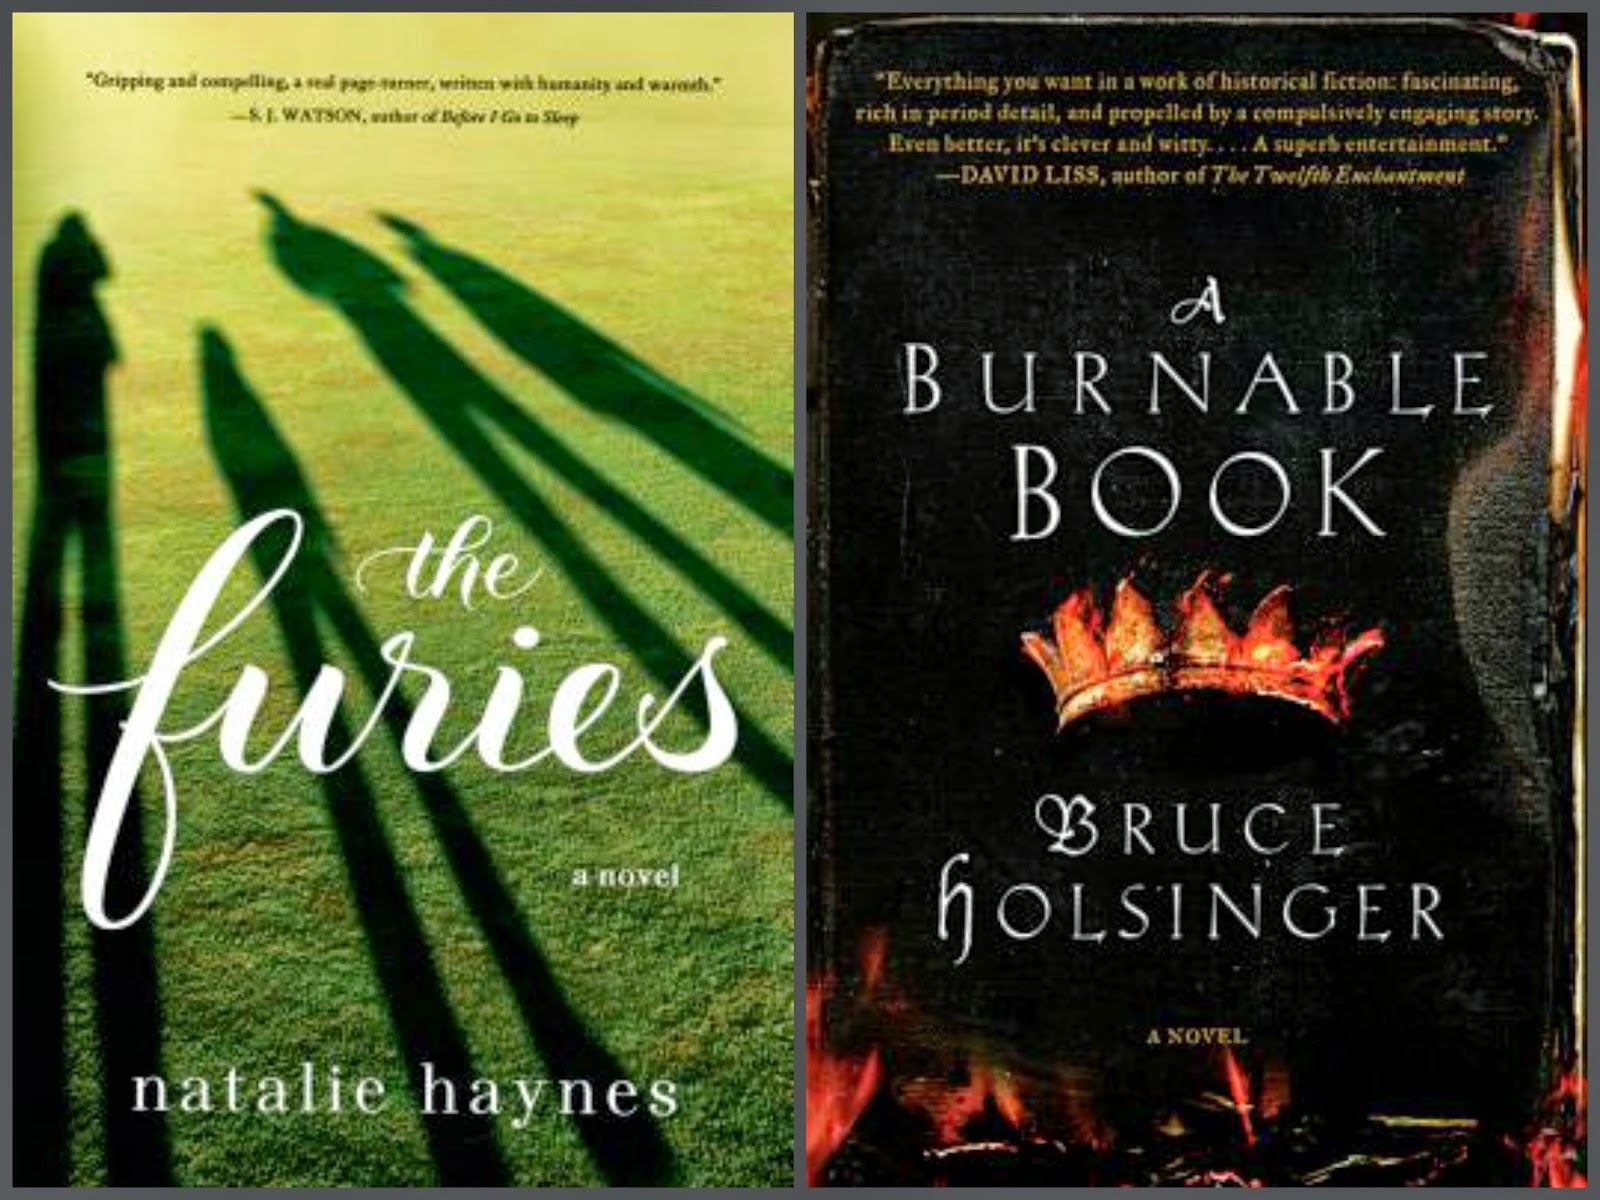 The Furies by Natalie Haynes; A Burnable Book by Bruce Holsinger